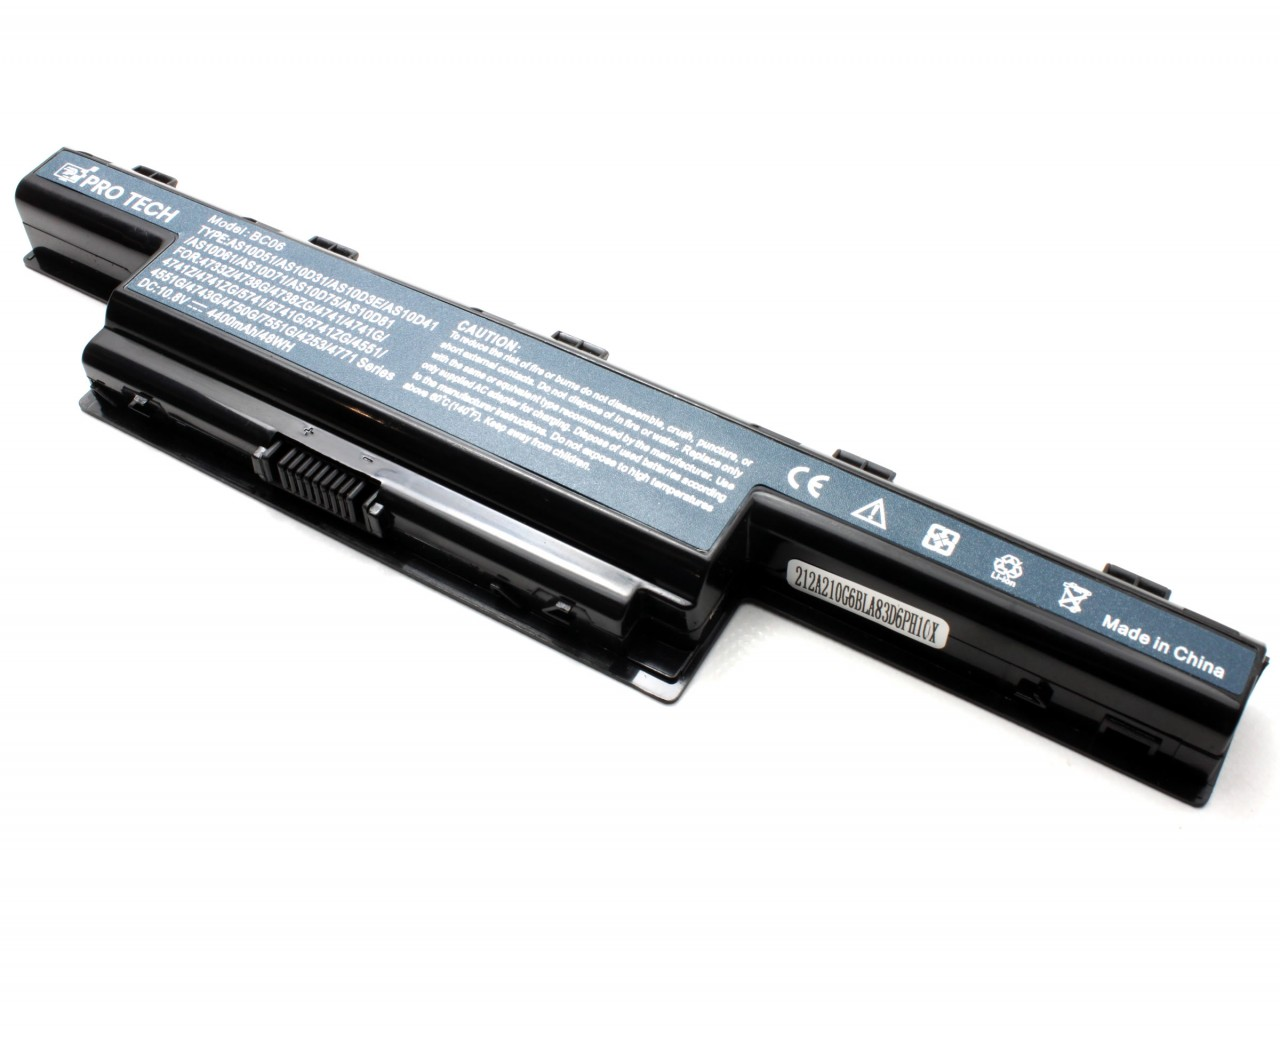 Baterie Packard Bell EasyNote TS44 6 celule imagine powerlaptop.ro 2021